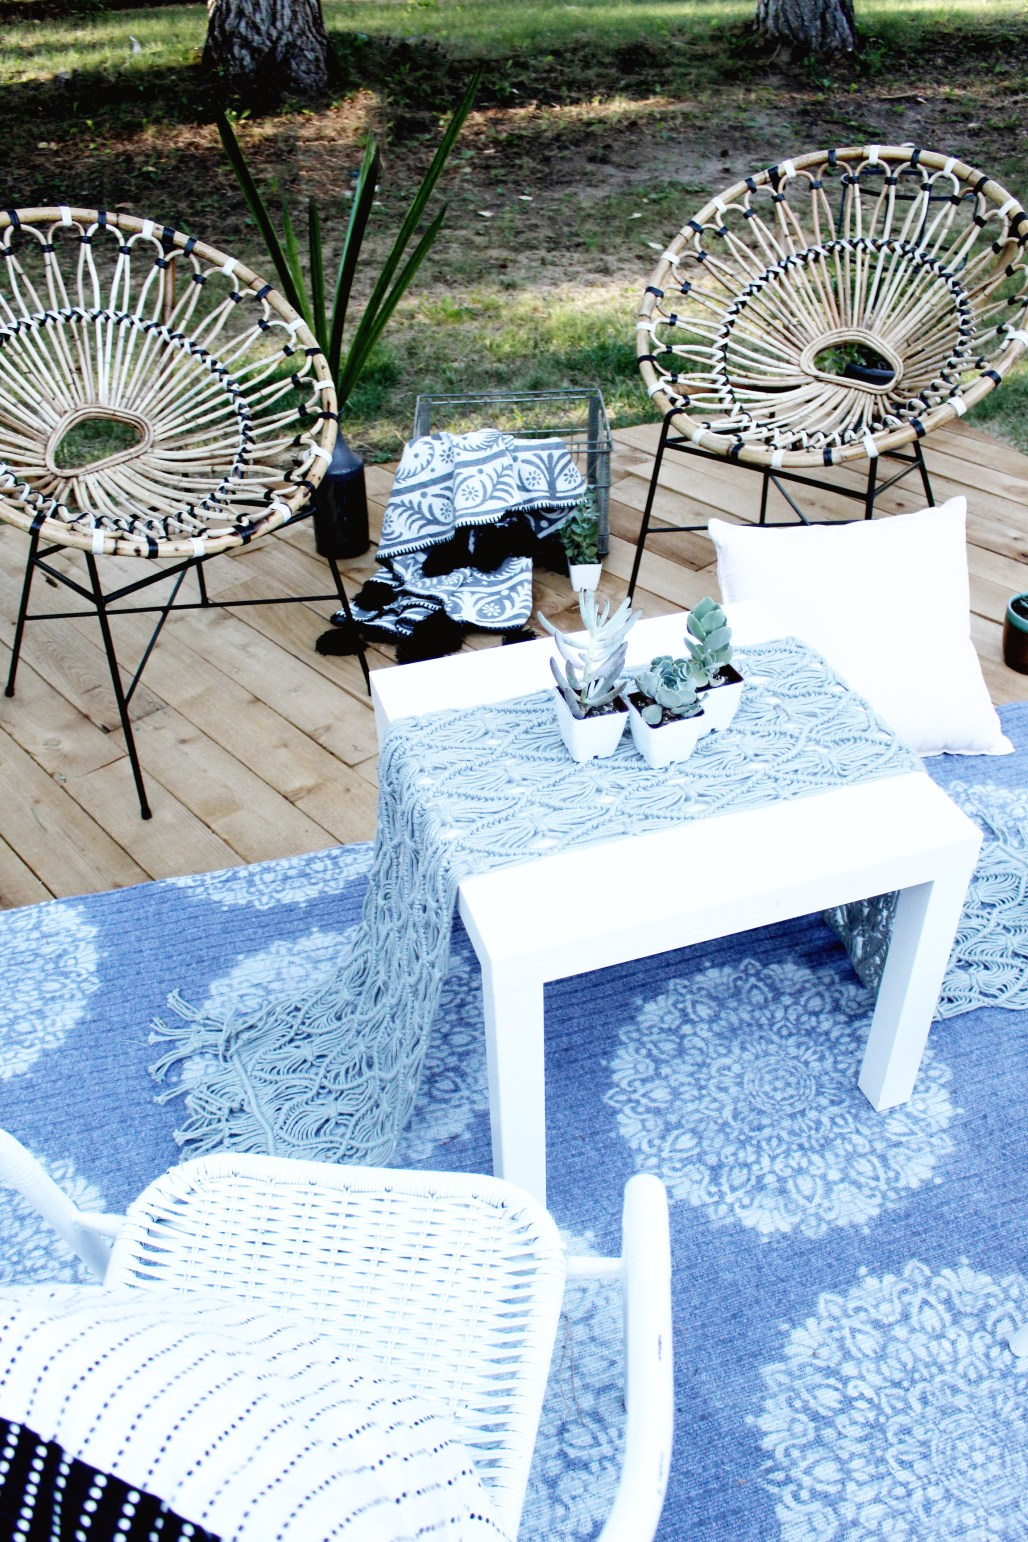 DIY Outdoor Seating Area With Article Furniture Daisy Lounge Chair